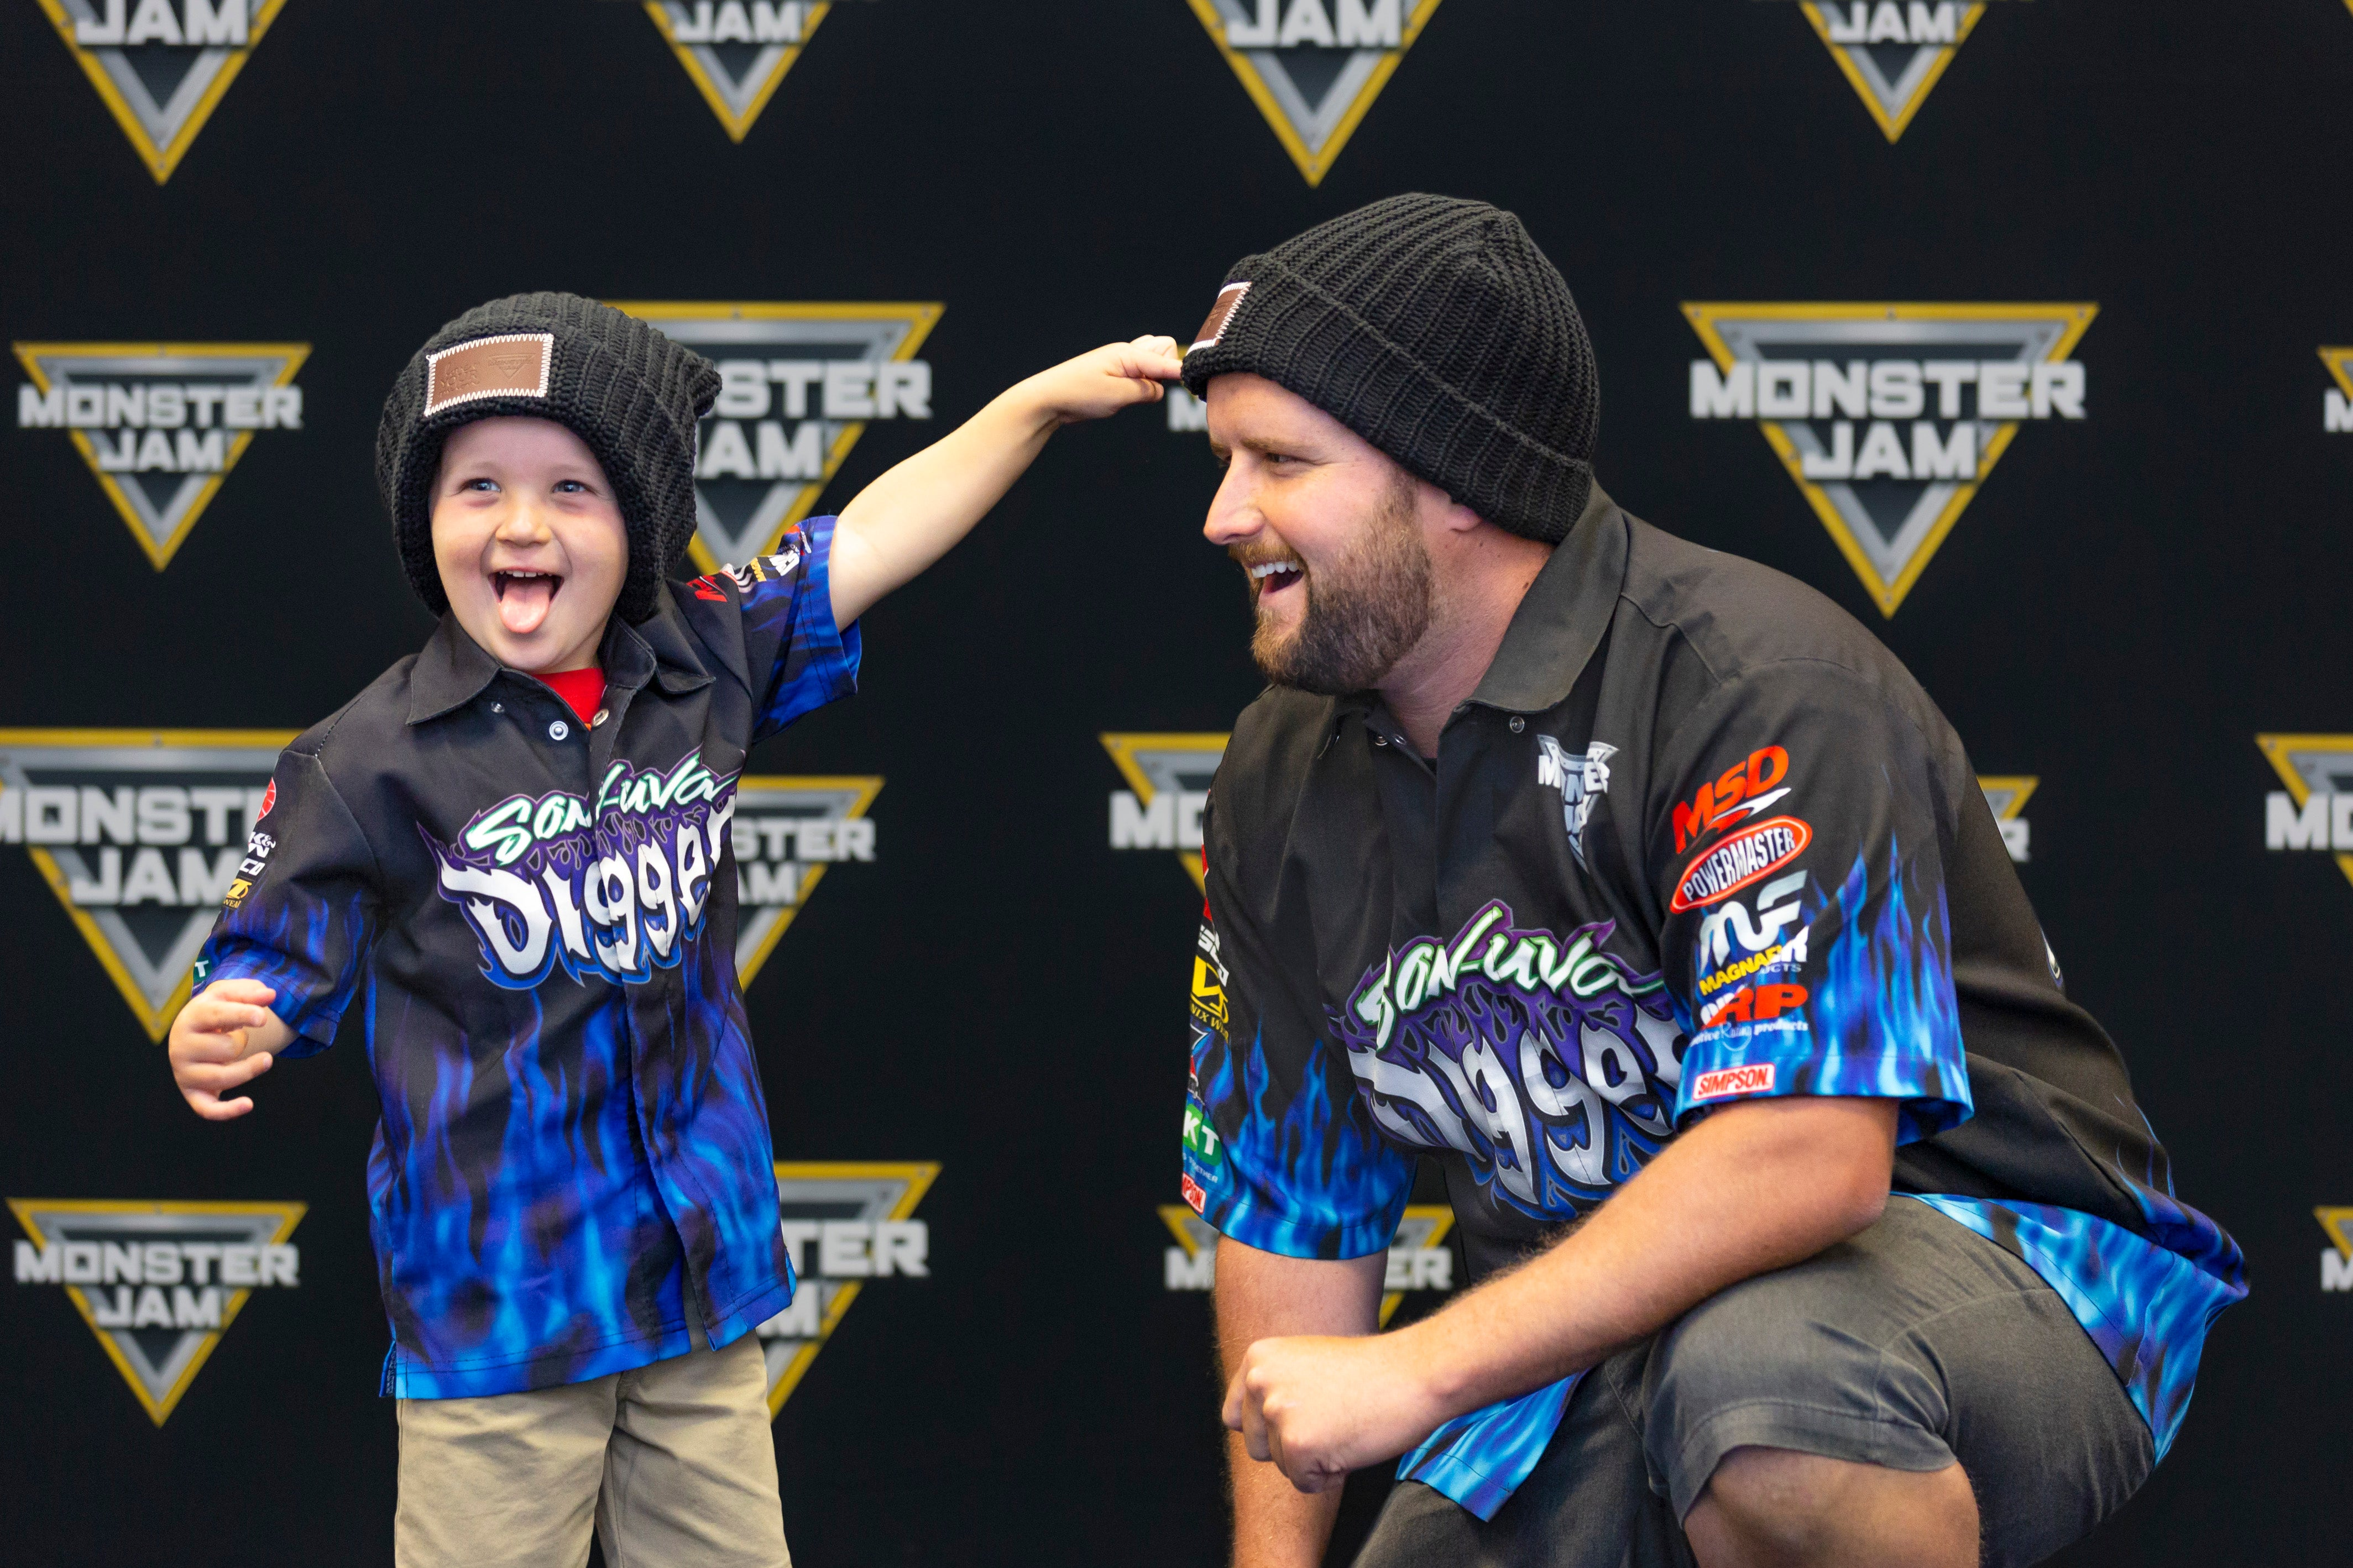 1a47afb750622 MONSTER JAM® Announces Partnership To Fight Pediatric Cancer With ...